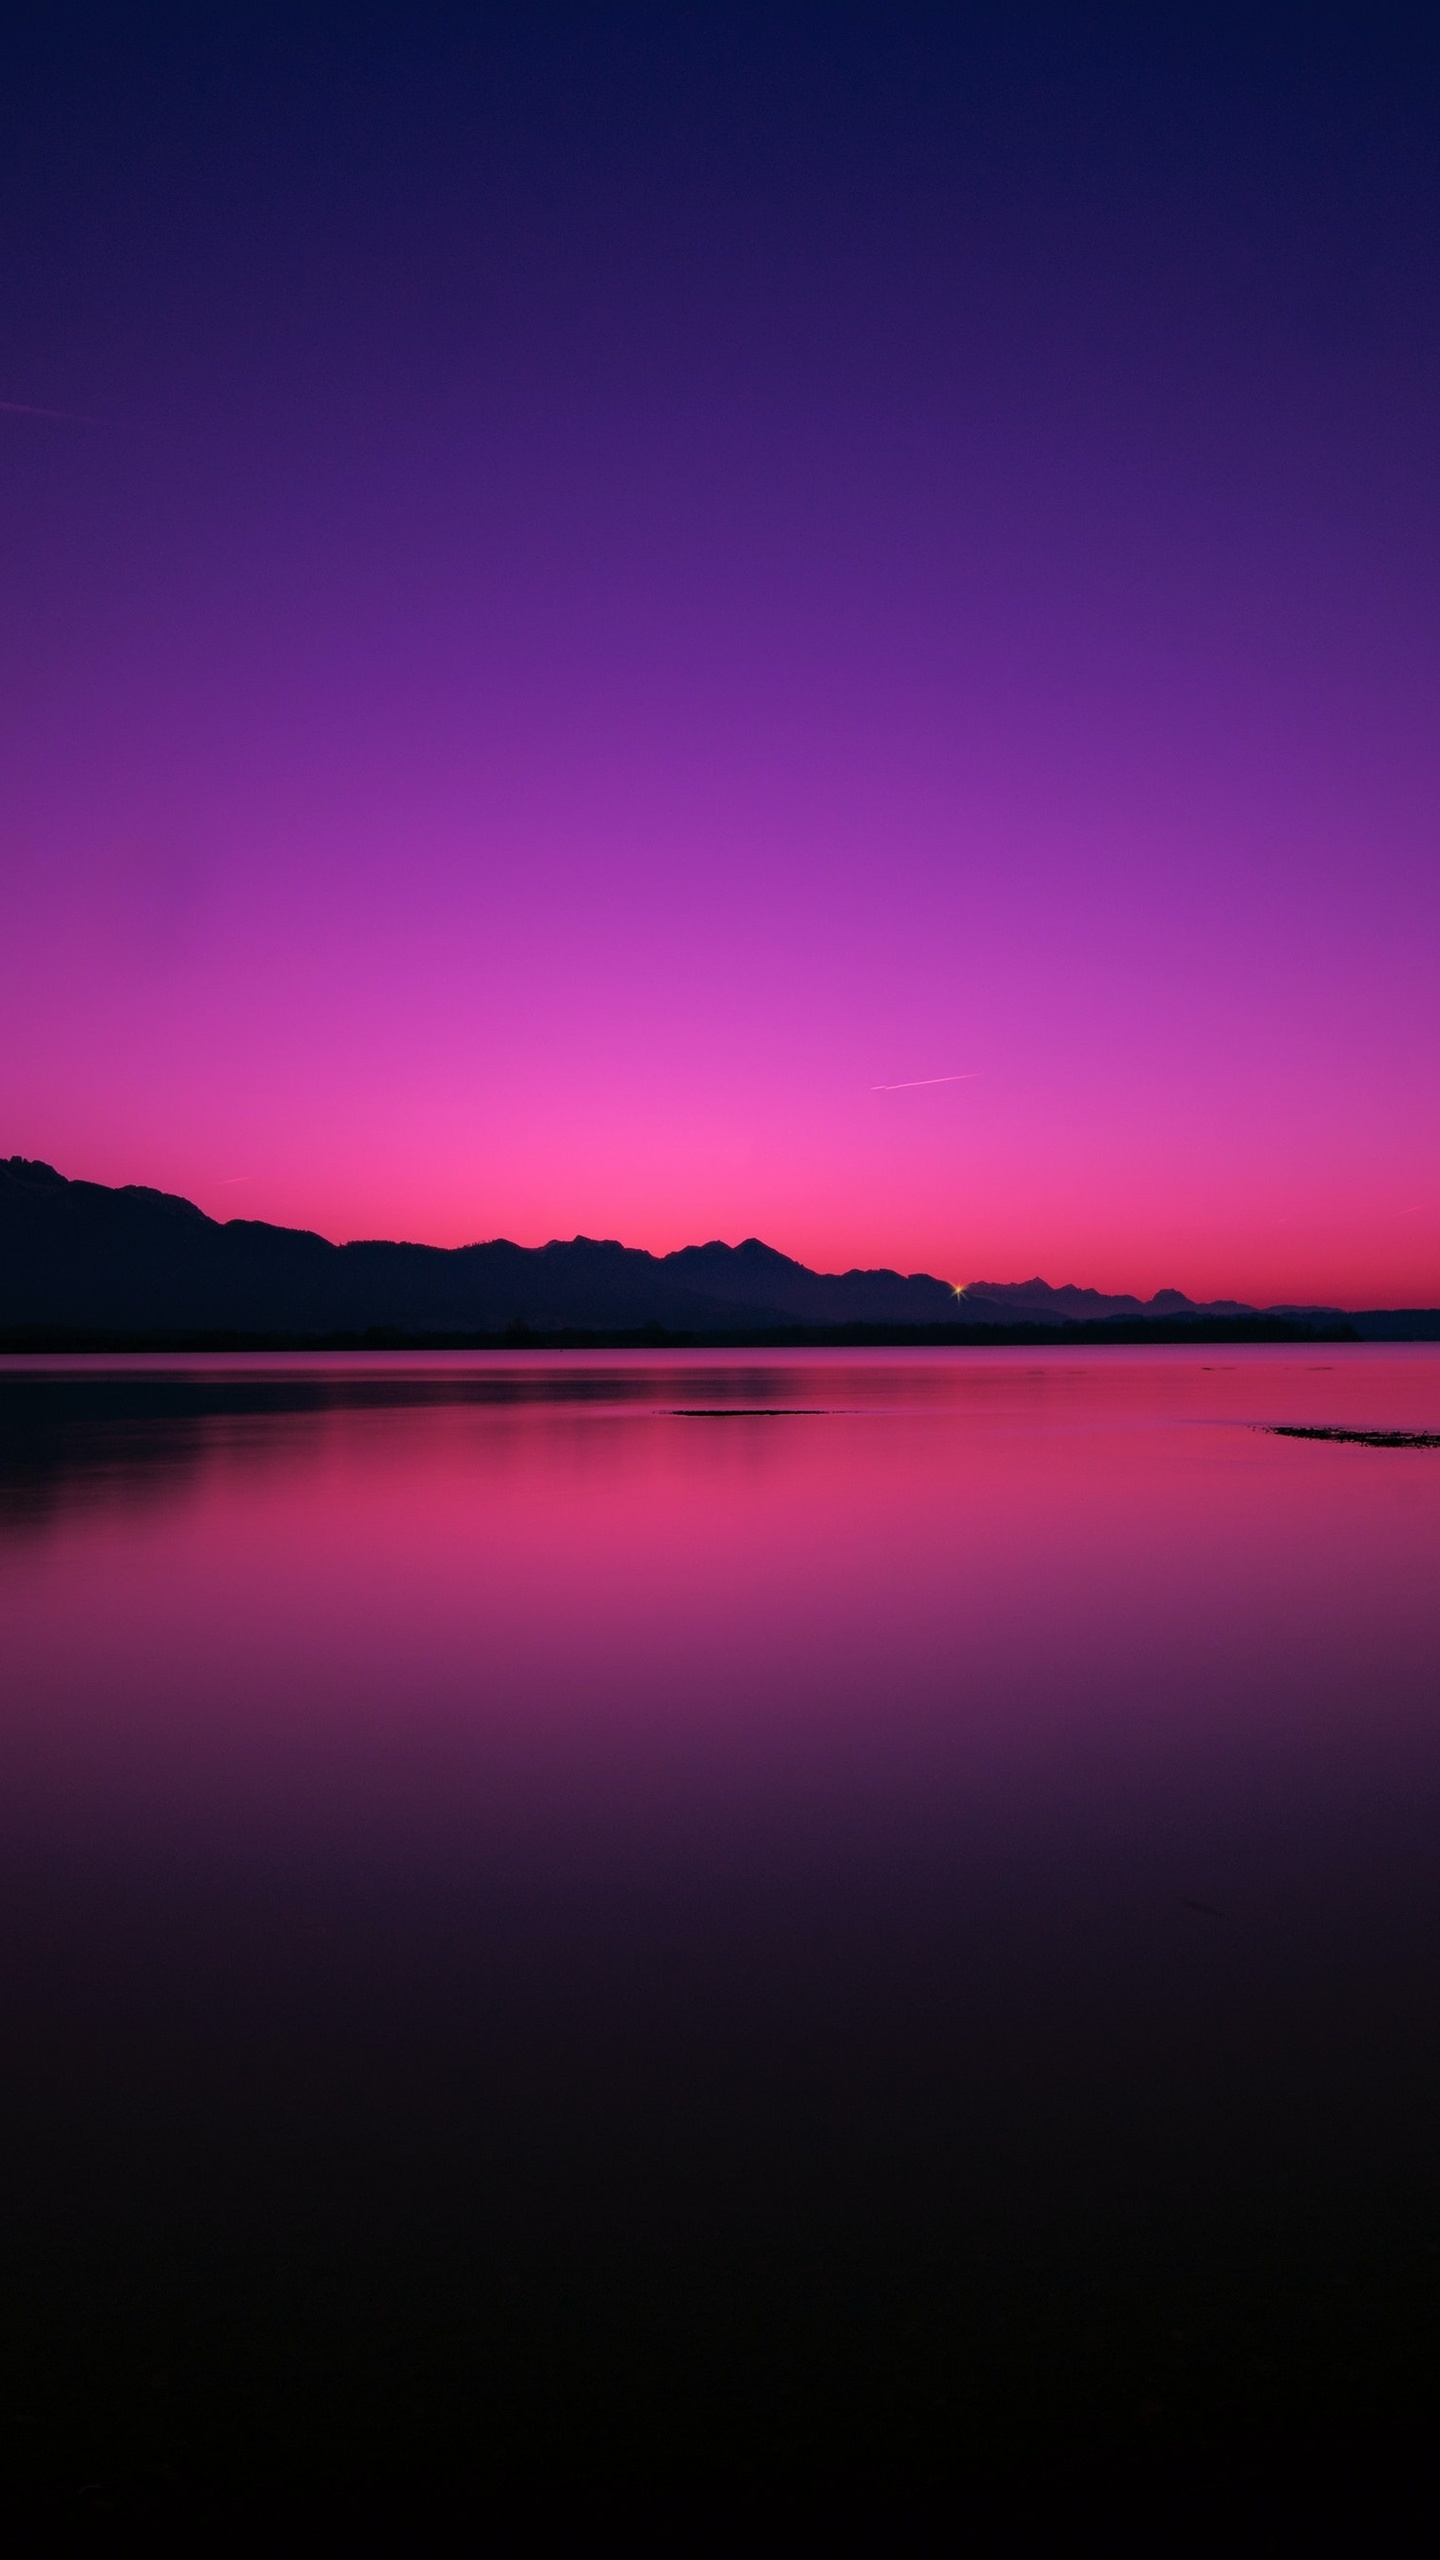 calm-water-body-pink-evening-4k-54.jpg